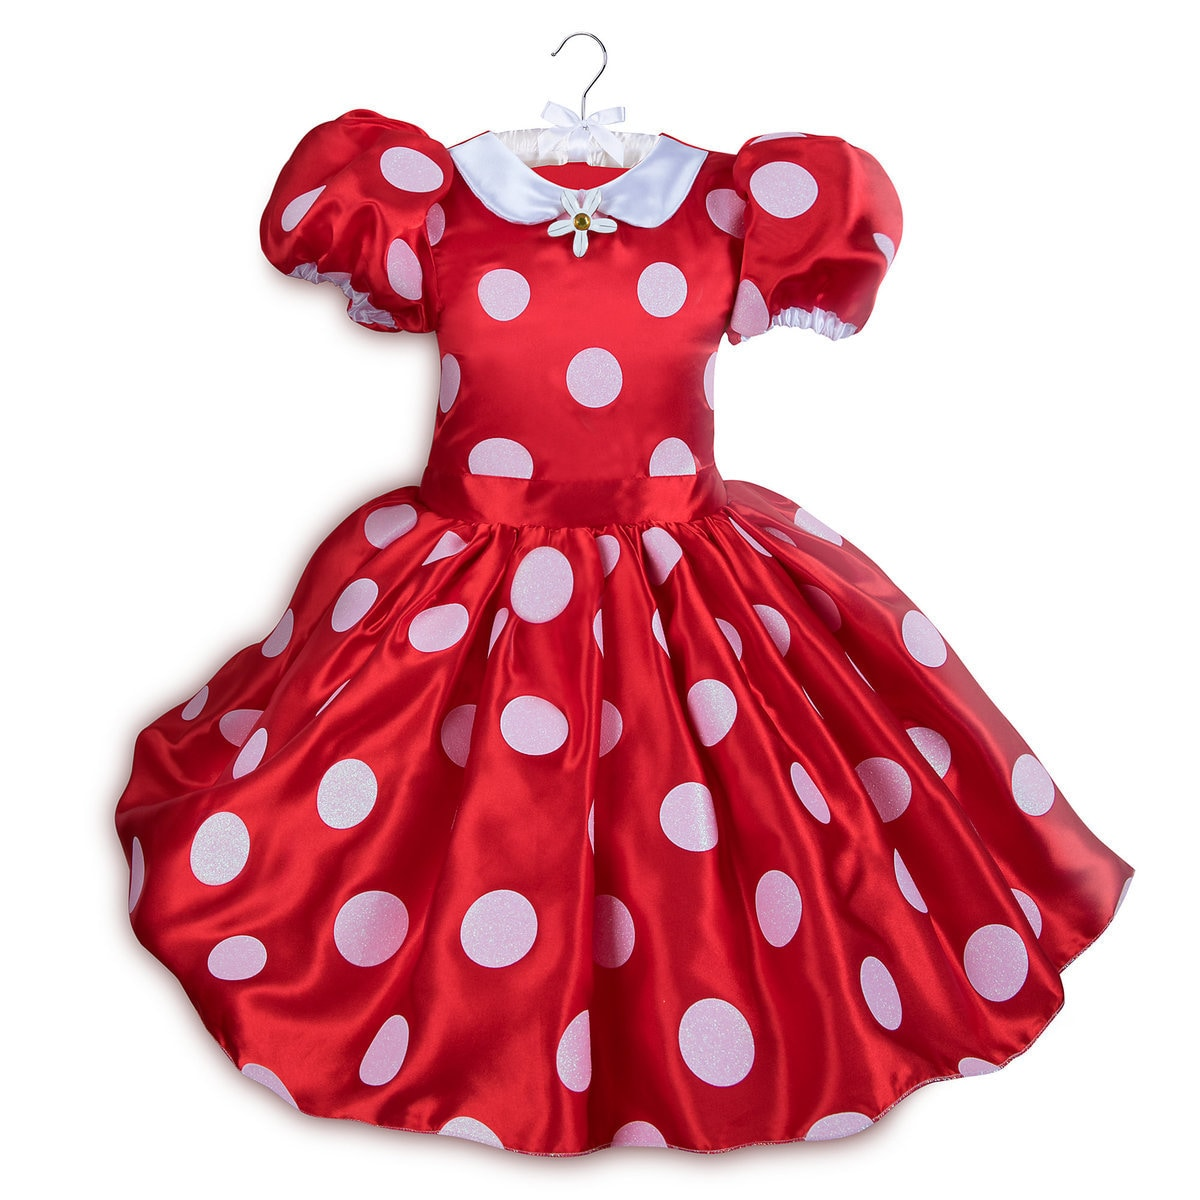 d5c206e88 Product Image of Minnie Mouse Red Dress Costume for Kids # 1